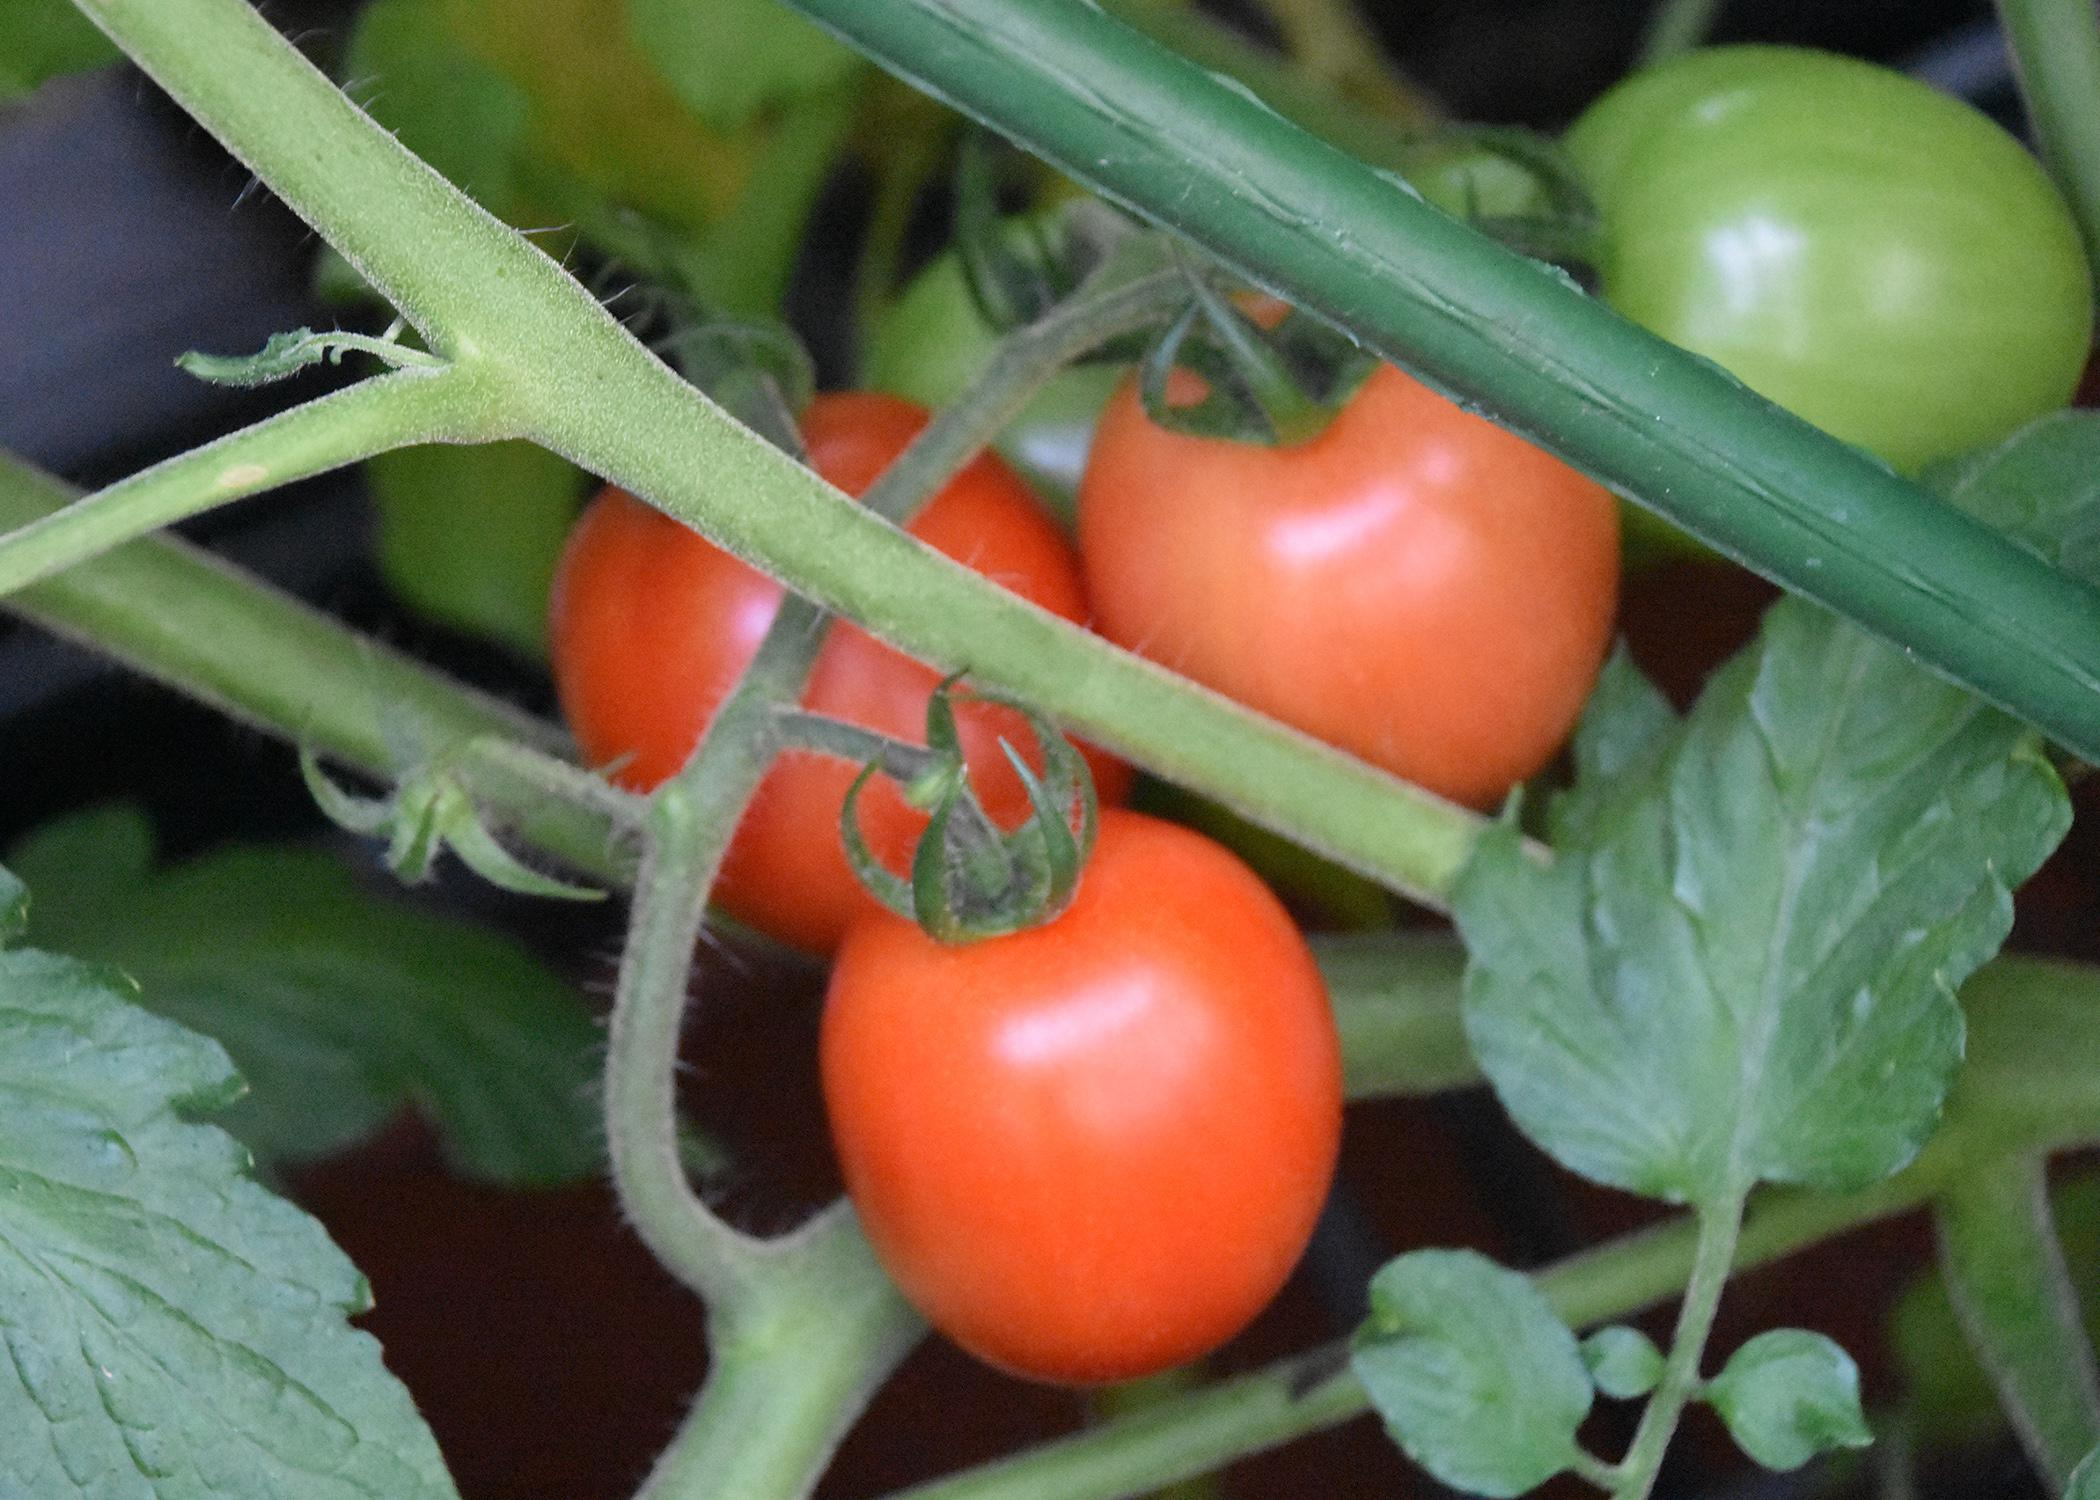 Three red tomatoes grow on a plant with green tomatoes.